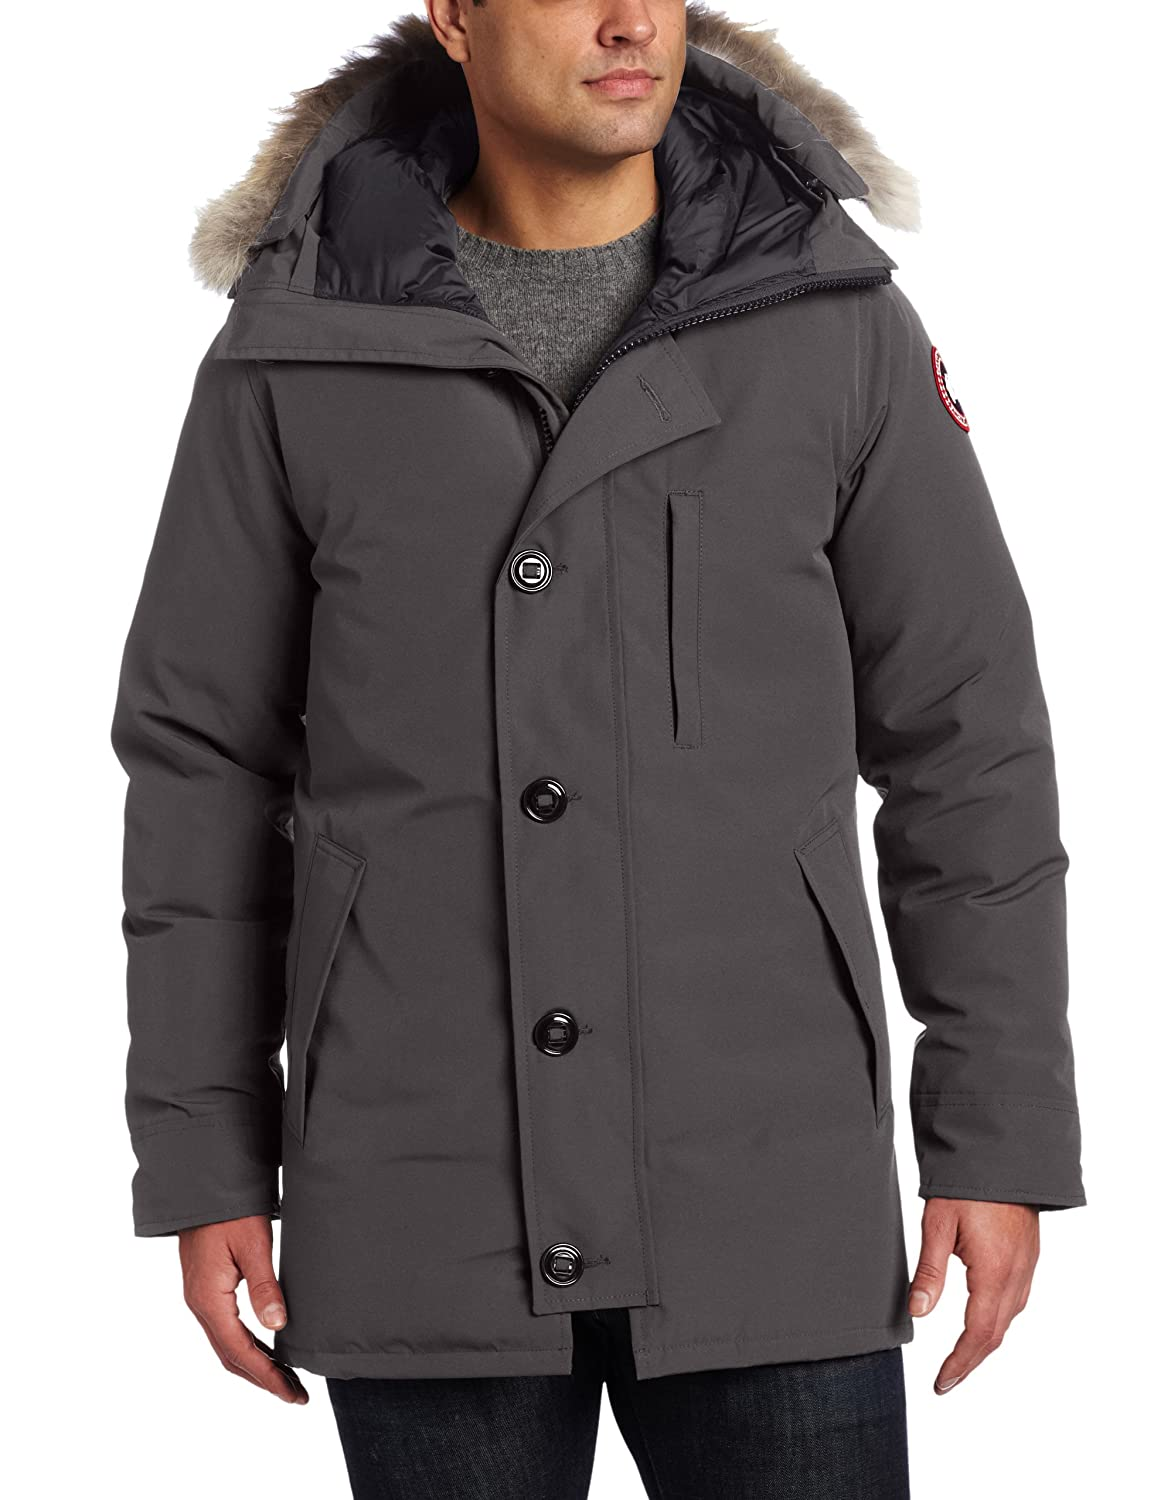 Canada Goose kids sale official - Amazon.com: Canada Goose Langford Parka Coat Jacket: Sports & Outdoors